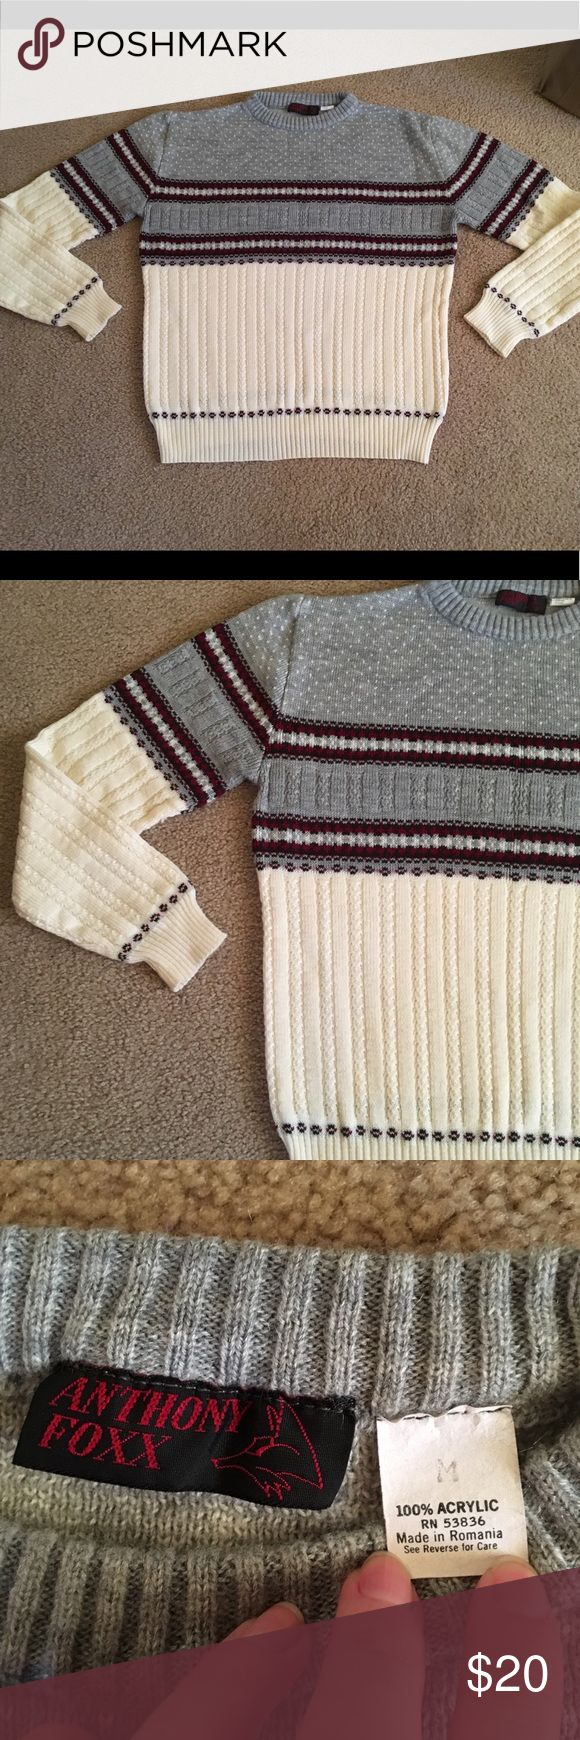 Men's Patterned Sweater Vintage men's sweater with striped pattern. Grey, cream, and red. Anthony Foxx brand, size M. Great used condition. Slight pull on fabric as seen in photos. See photos for measurements (pit to pit and sweater length). Anthony Foxx Sweaters Crewneck